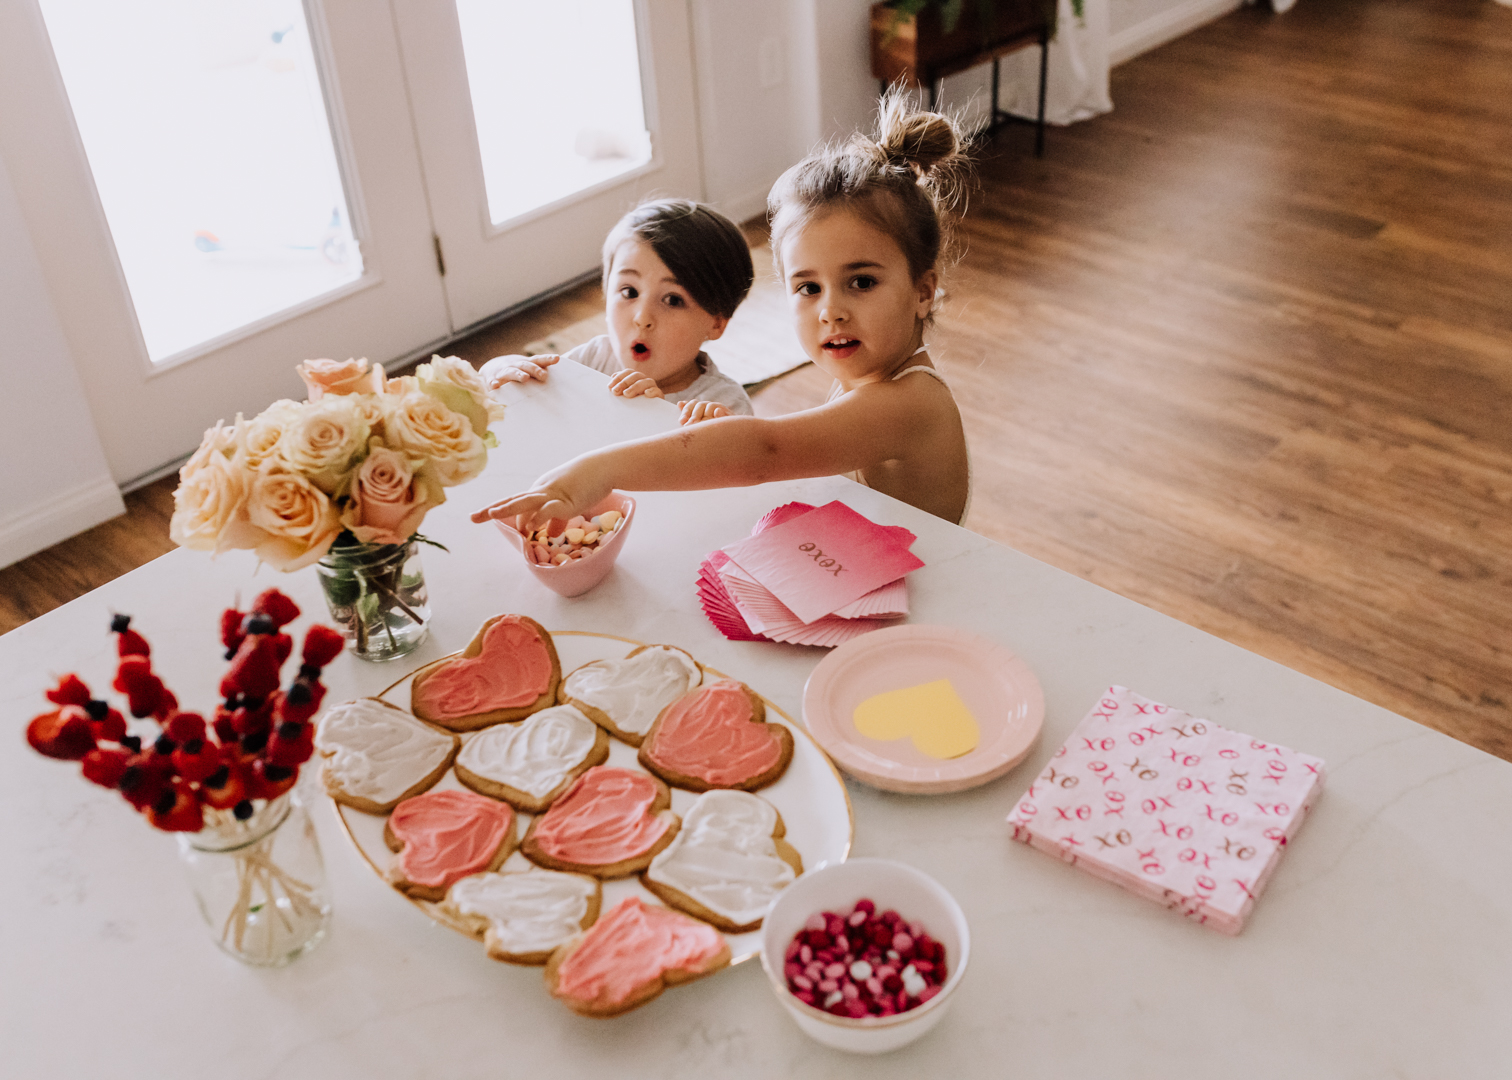 these two are just here for the valentine's heart shaped treats | thelovedesignedlife.com #valentinesday #party